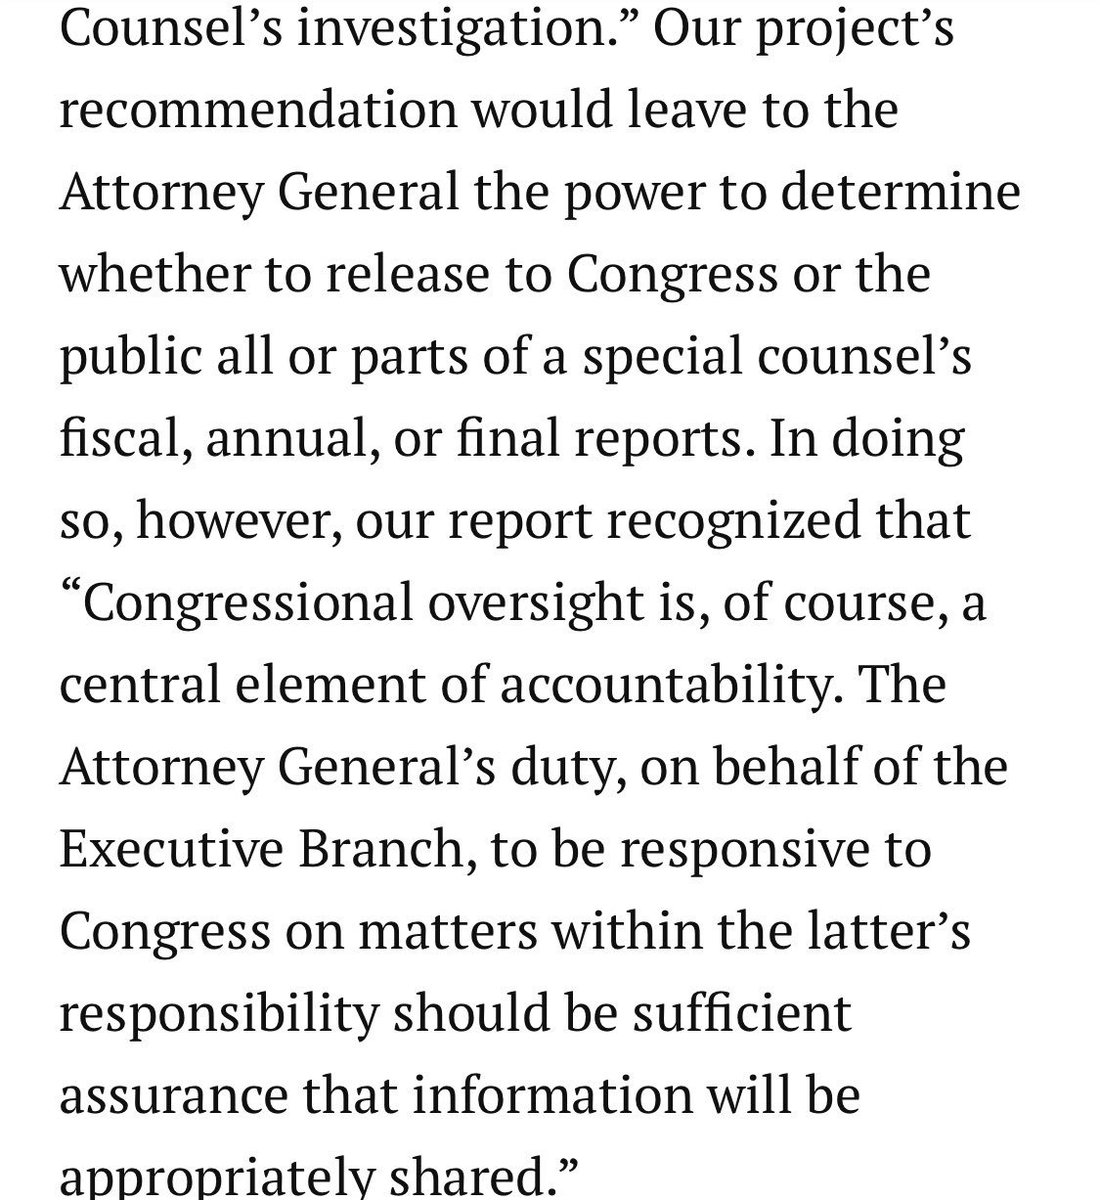 """This 1999 testimony concerning the intent behind the various sections of the Special Counsel regs by its drafters is very helpful, especially with regard to how the AG is expected to """"be responsive to Congress"""" when it comes to sharing the SC's reports. https://www.brookings.edu/testimonies/attorney-generals-special-counsel-regulations/…"""